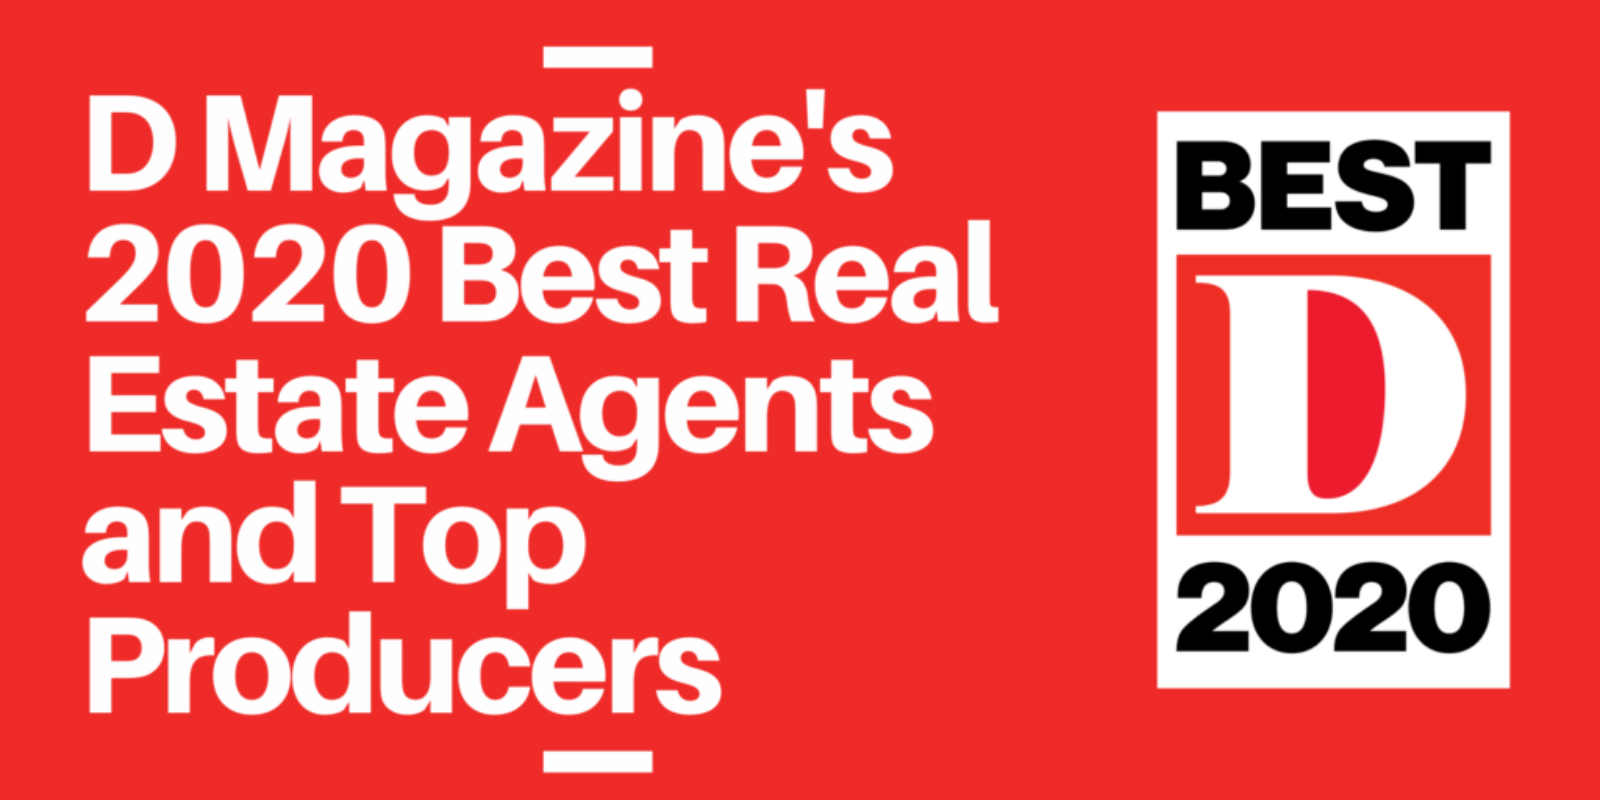 D Magazine's 2020 Best Real Estate Agents and Top Producers (1)